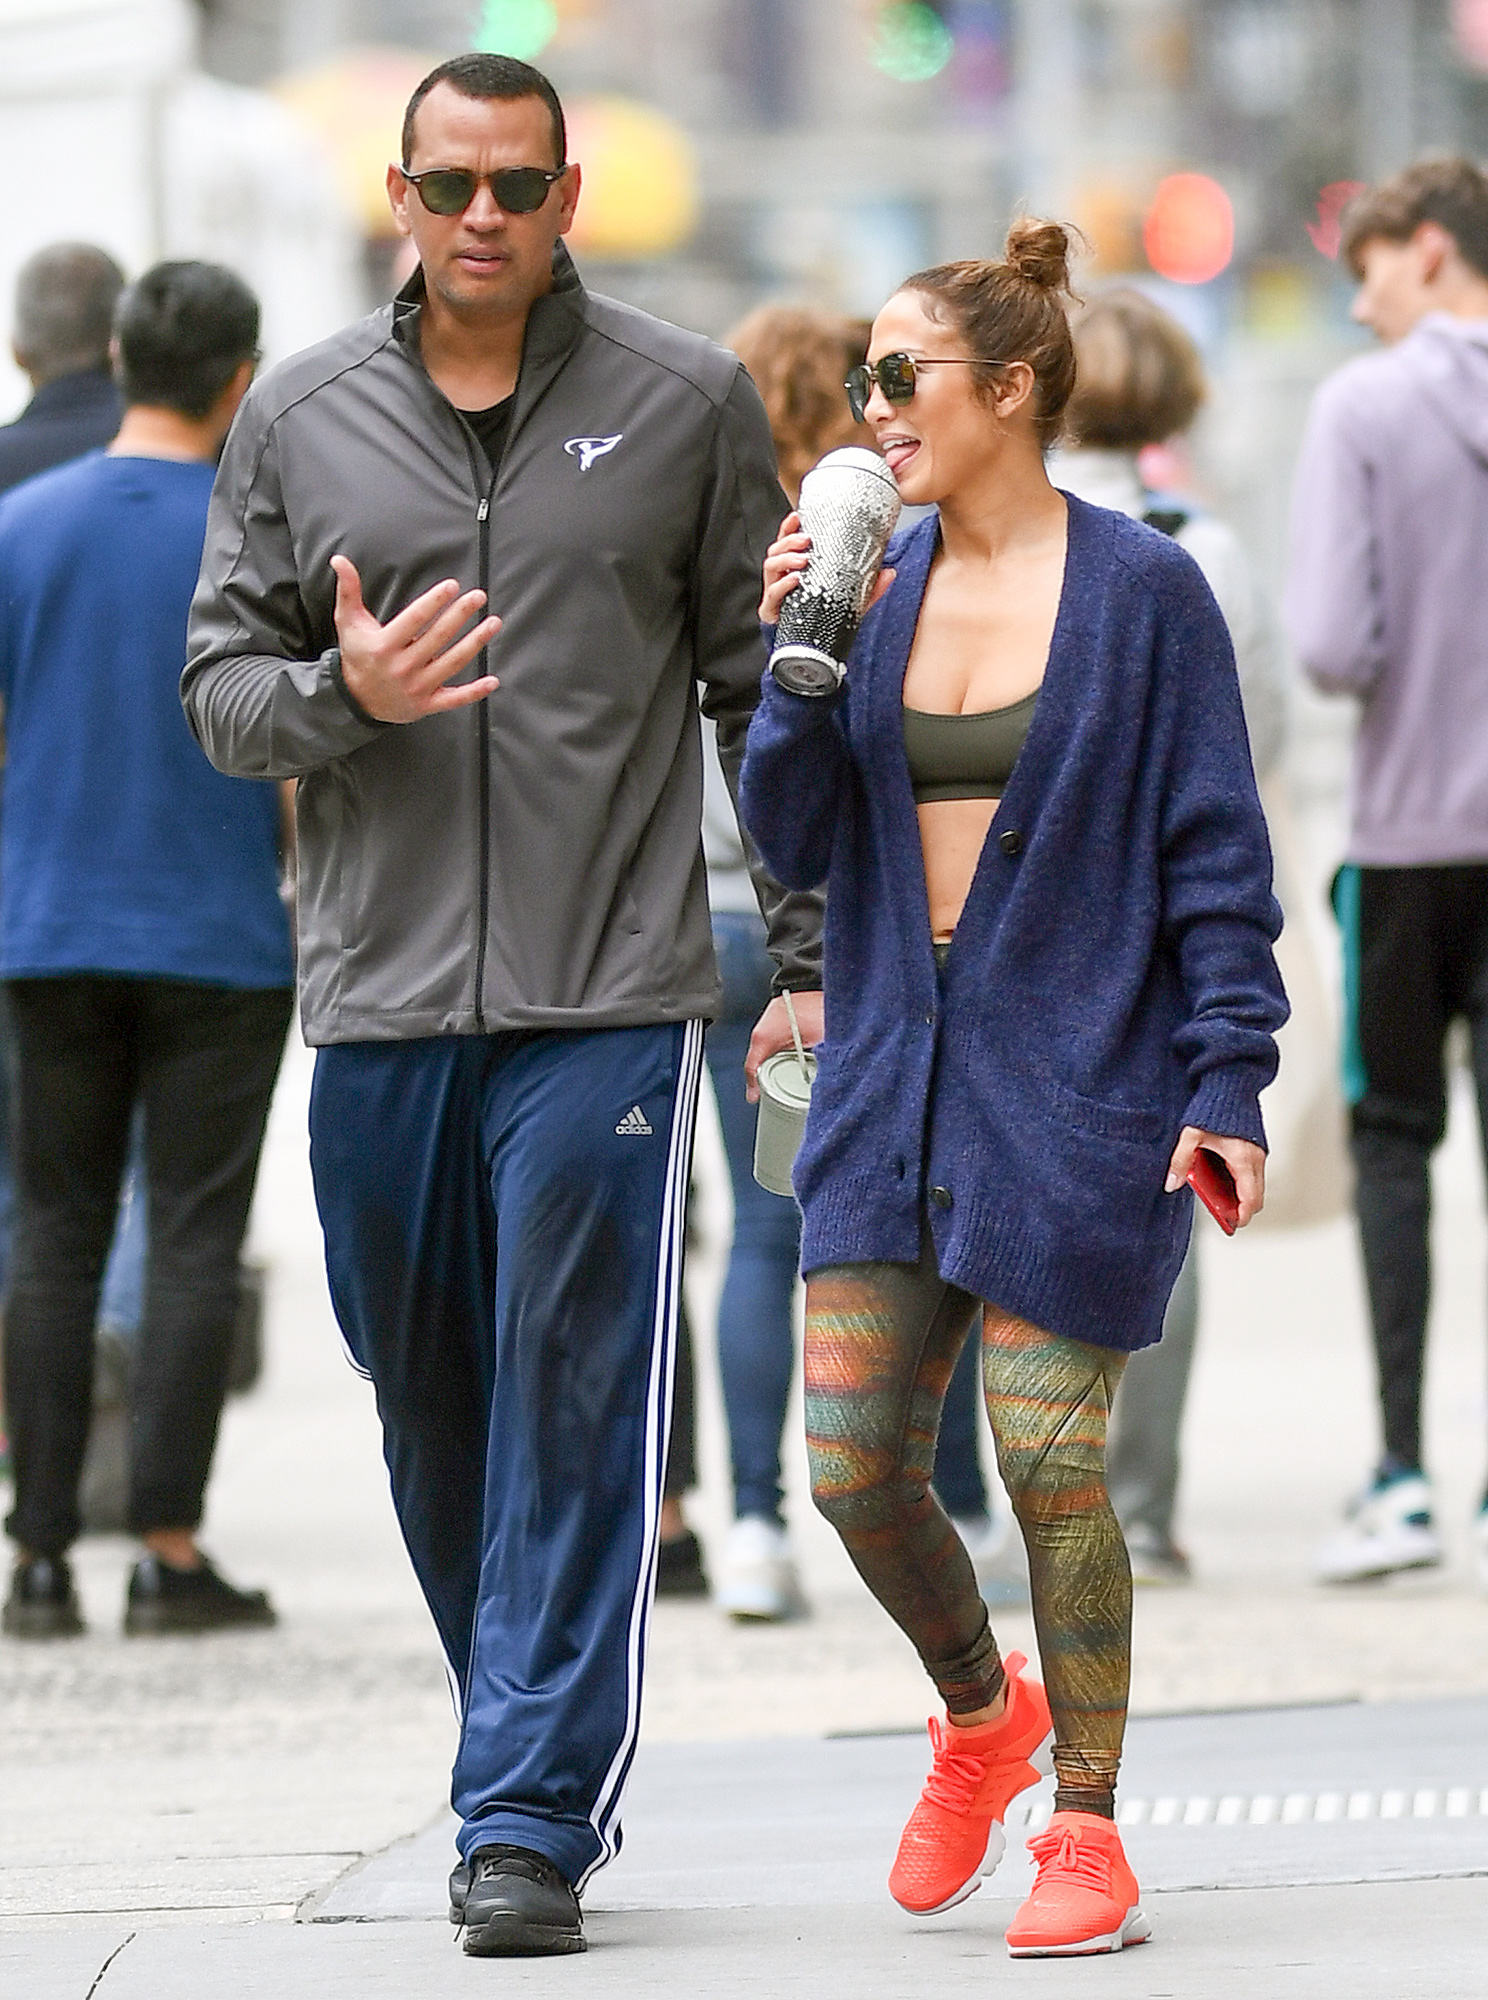 EXCLUSIVE: Jennifer Lopez and her boyfriend Arod heading back home after doing some work out at the gym